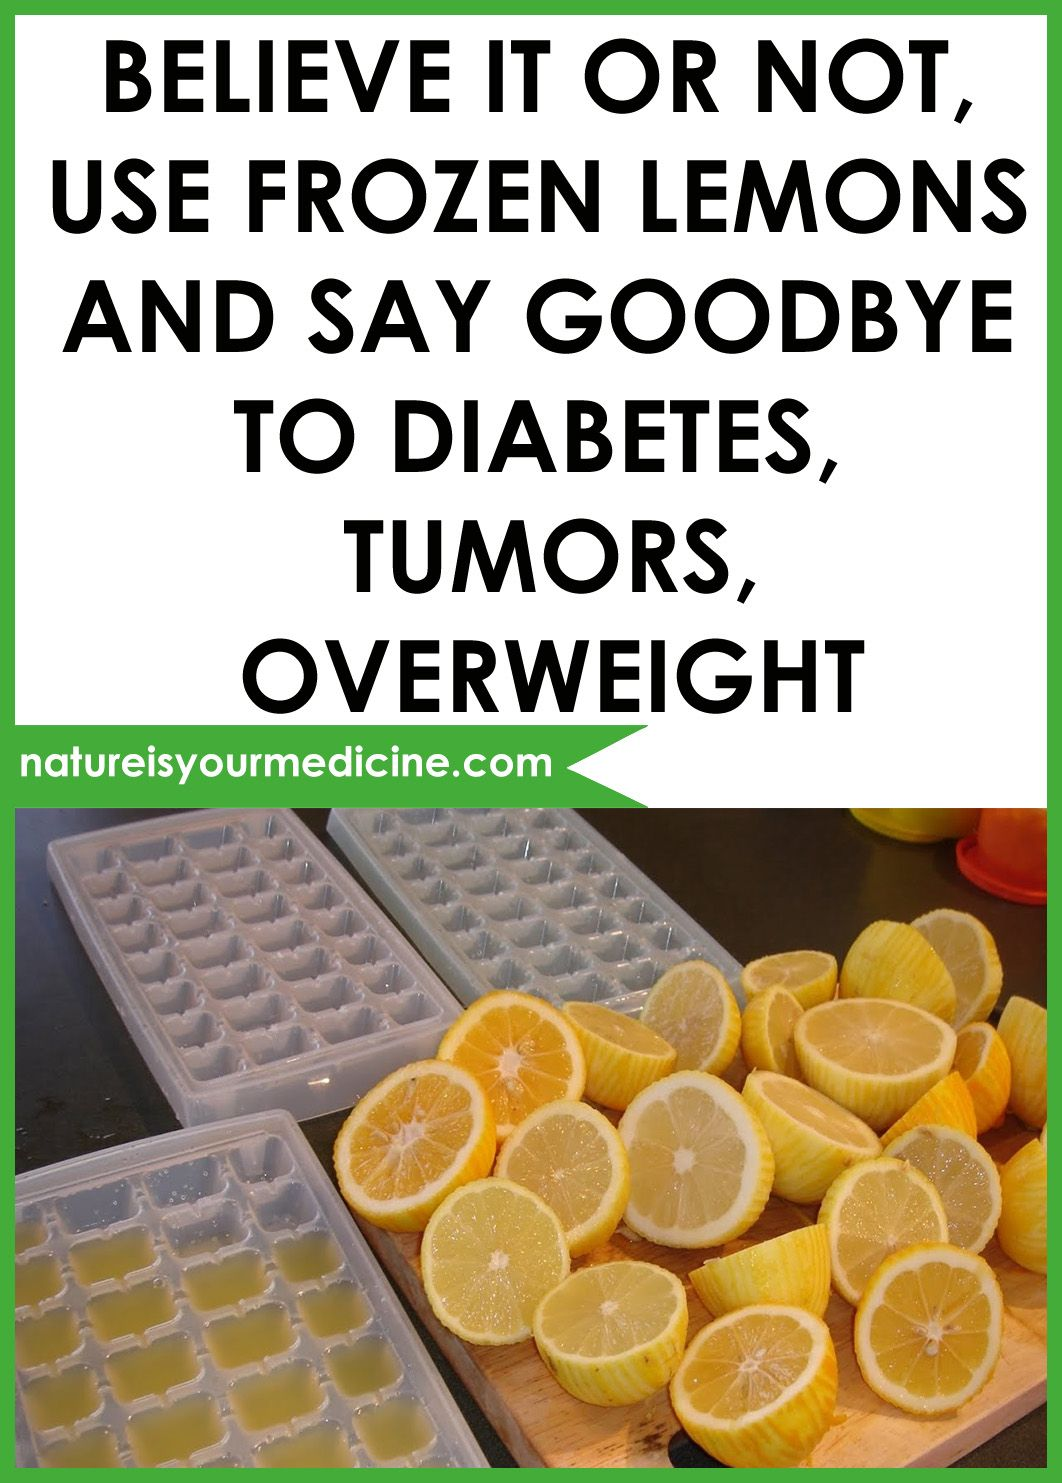 BELIEVE IT OR NOT, USE FROZEN LEMONS AND SAY GOODBYE TO DIABETES